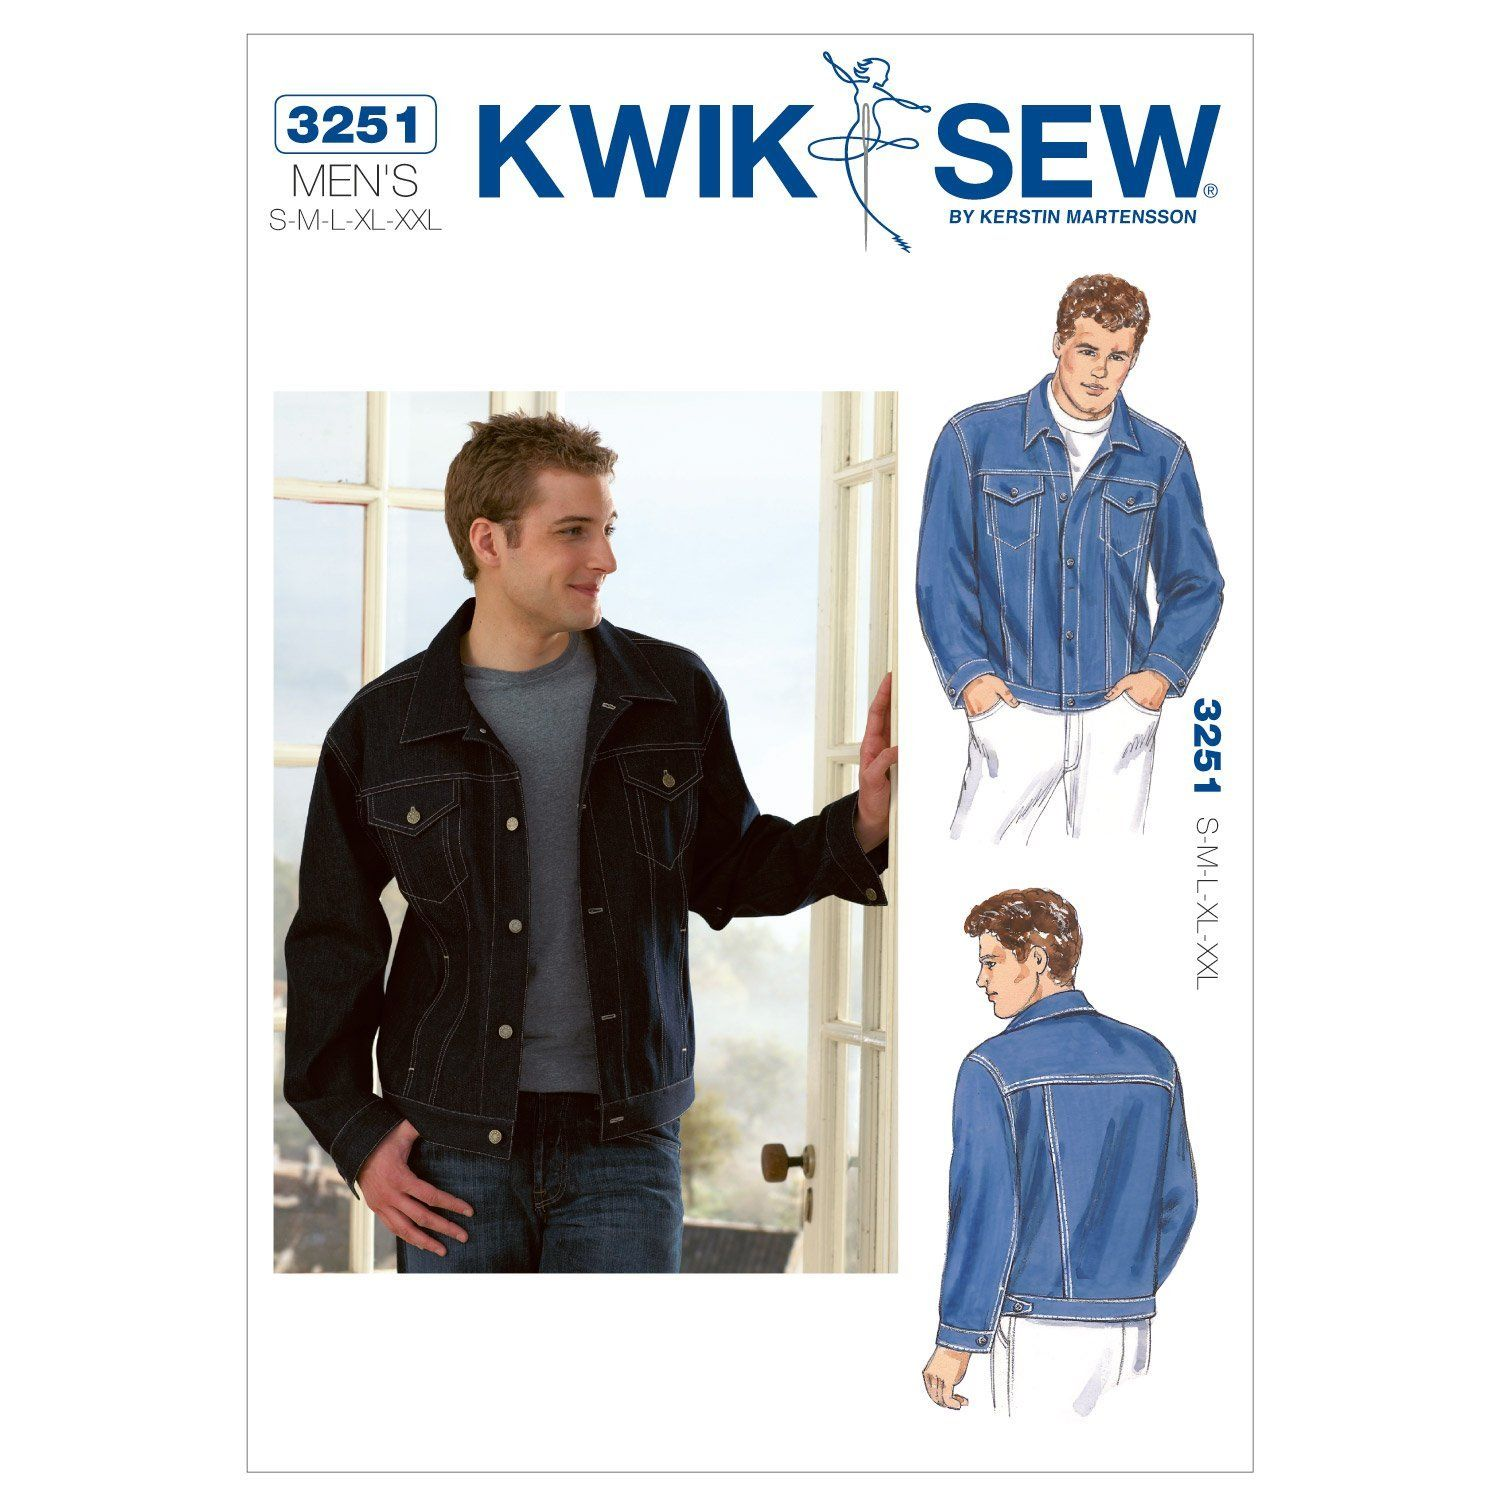 Kwik Sew K3251 Jean Jacket Sewing Pattern, Size S-M-L-XL-XXL Price ...